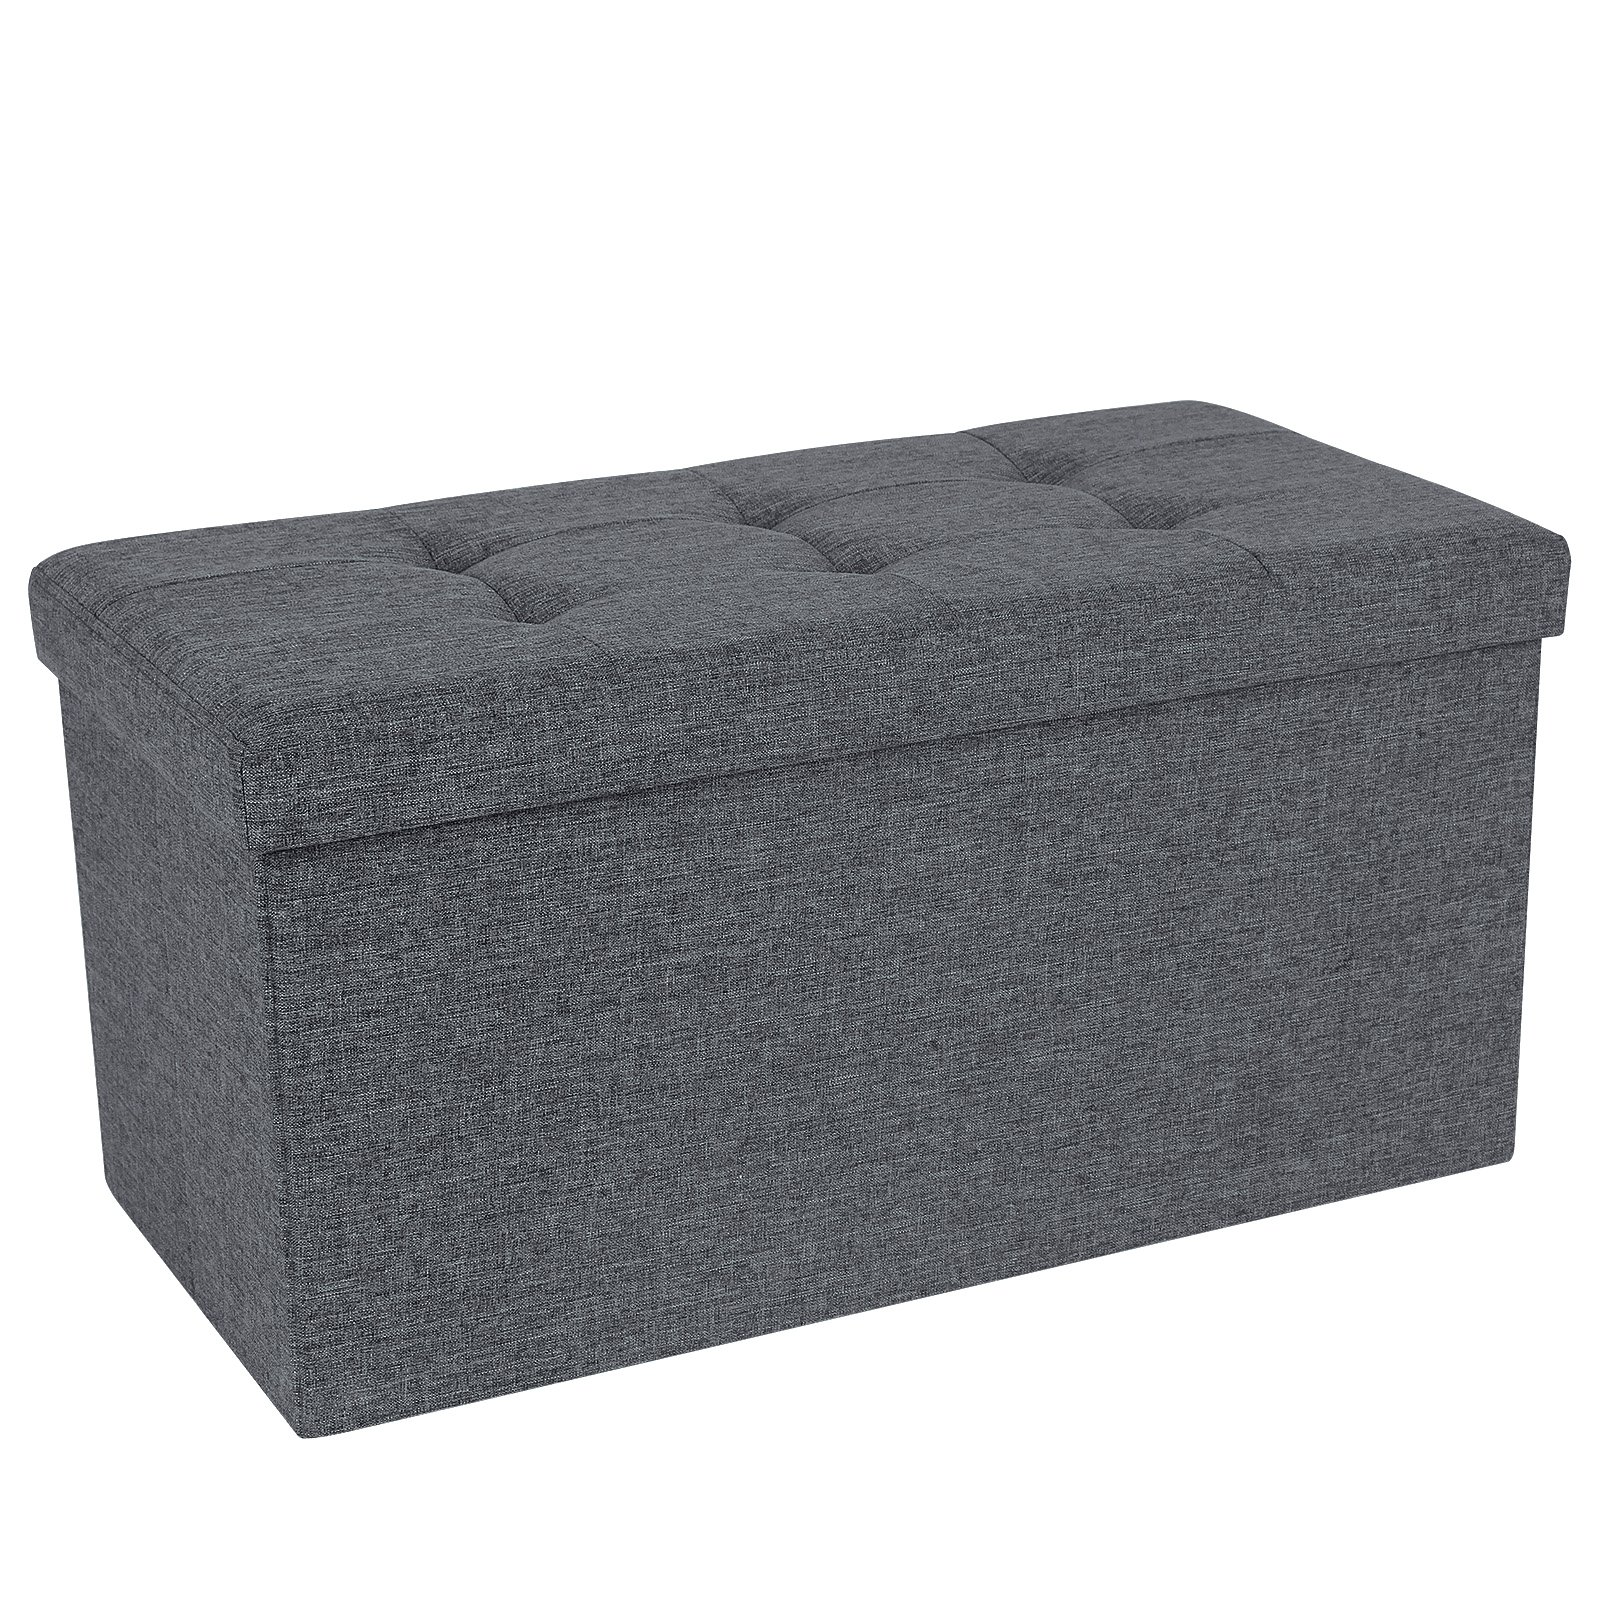 SONGMICS Storage Ottoman Bench, Chest with Lid, Foldable Seat, Bedroom, Hallway, Space-saving, 80L Capacity, Hold up to 660 lb, Padded, Dark Grey ULSF47K by SONGMICS